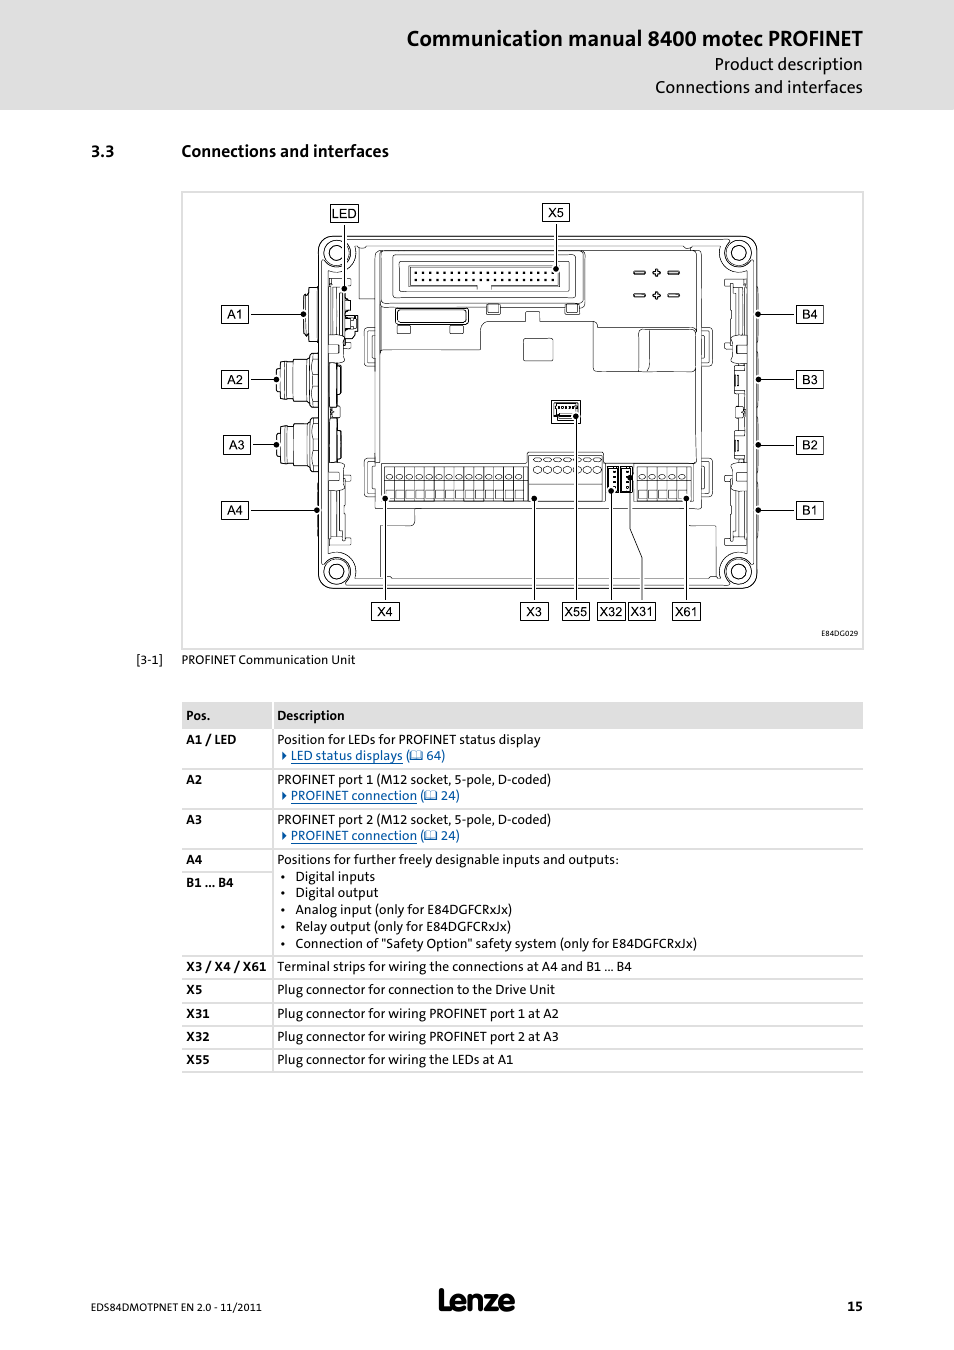 hight resolution of 3 connections and interfaces connections and interfaces communication manual 8400 motec profinet lenze